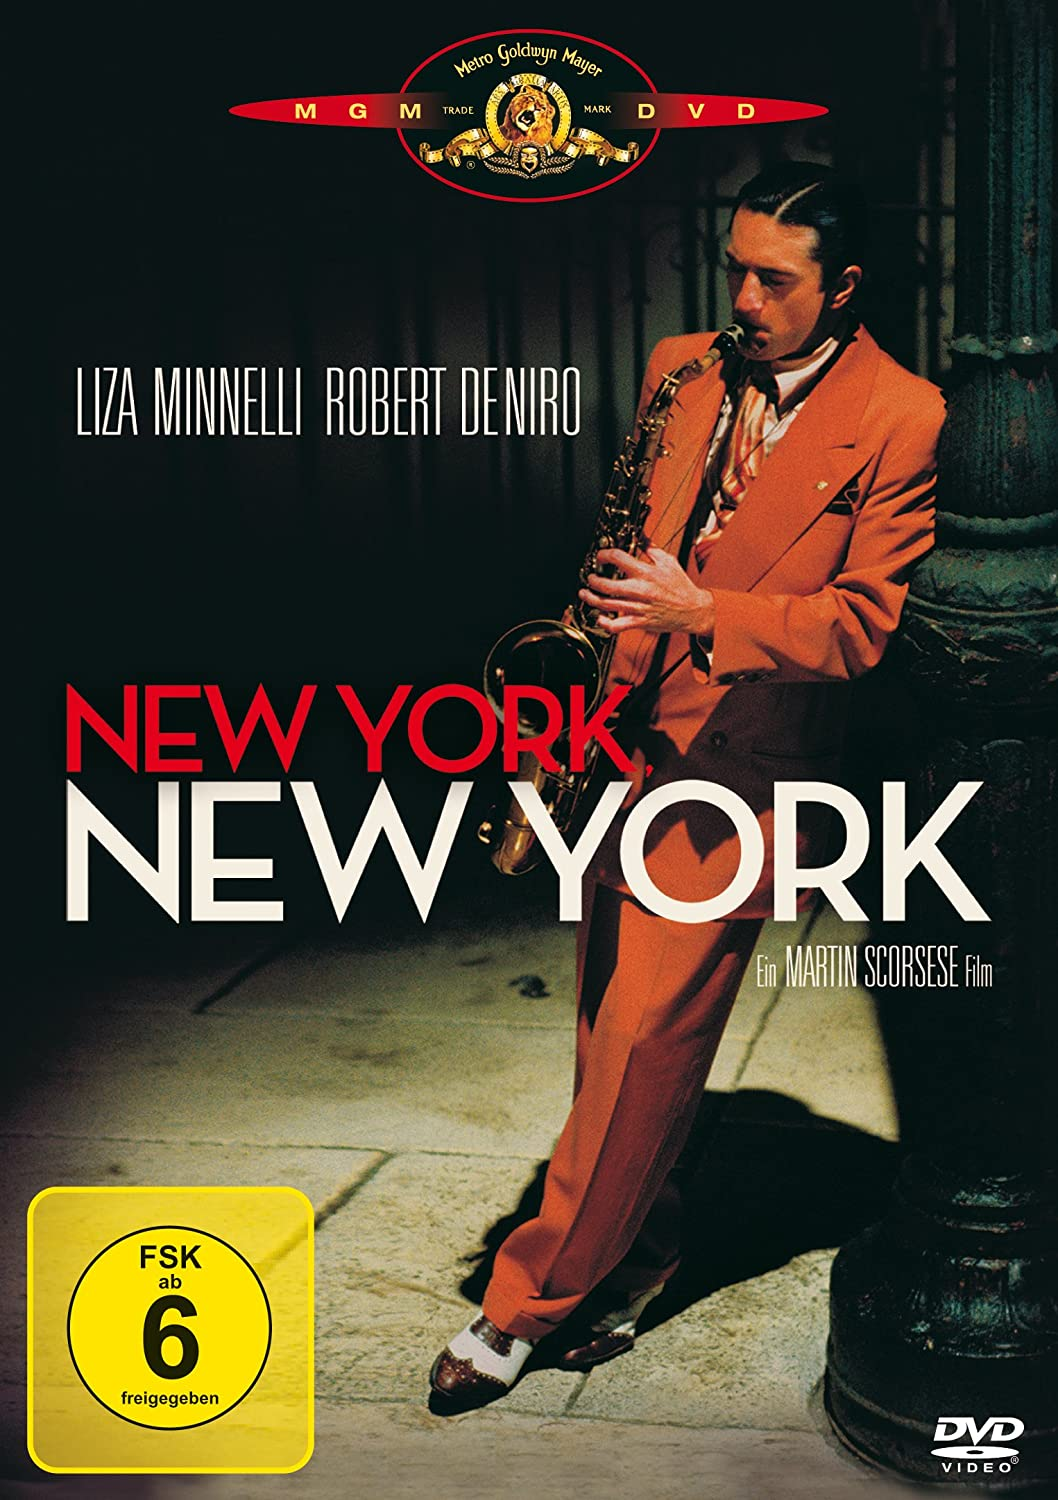 New York New York Amazon De Liza Minnelli Robert De Niro